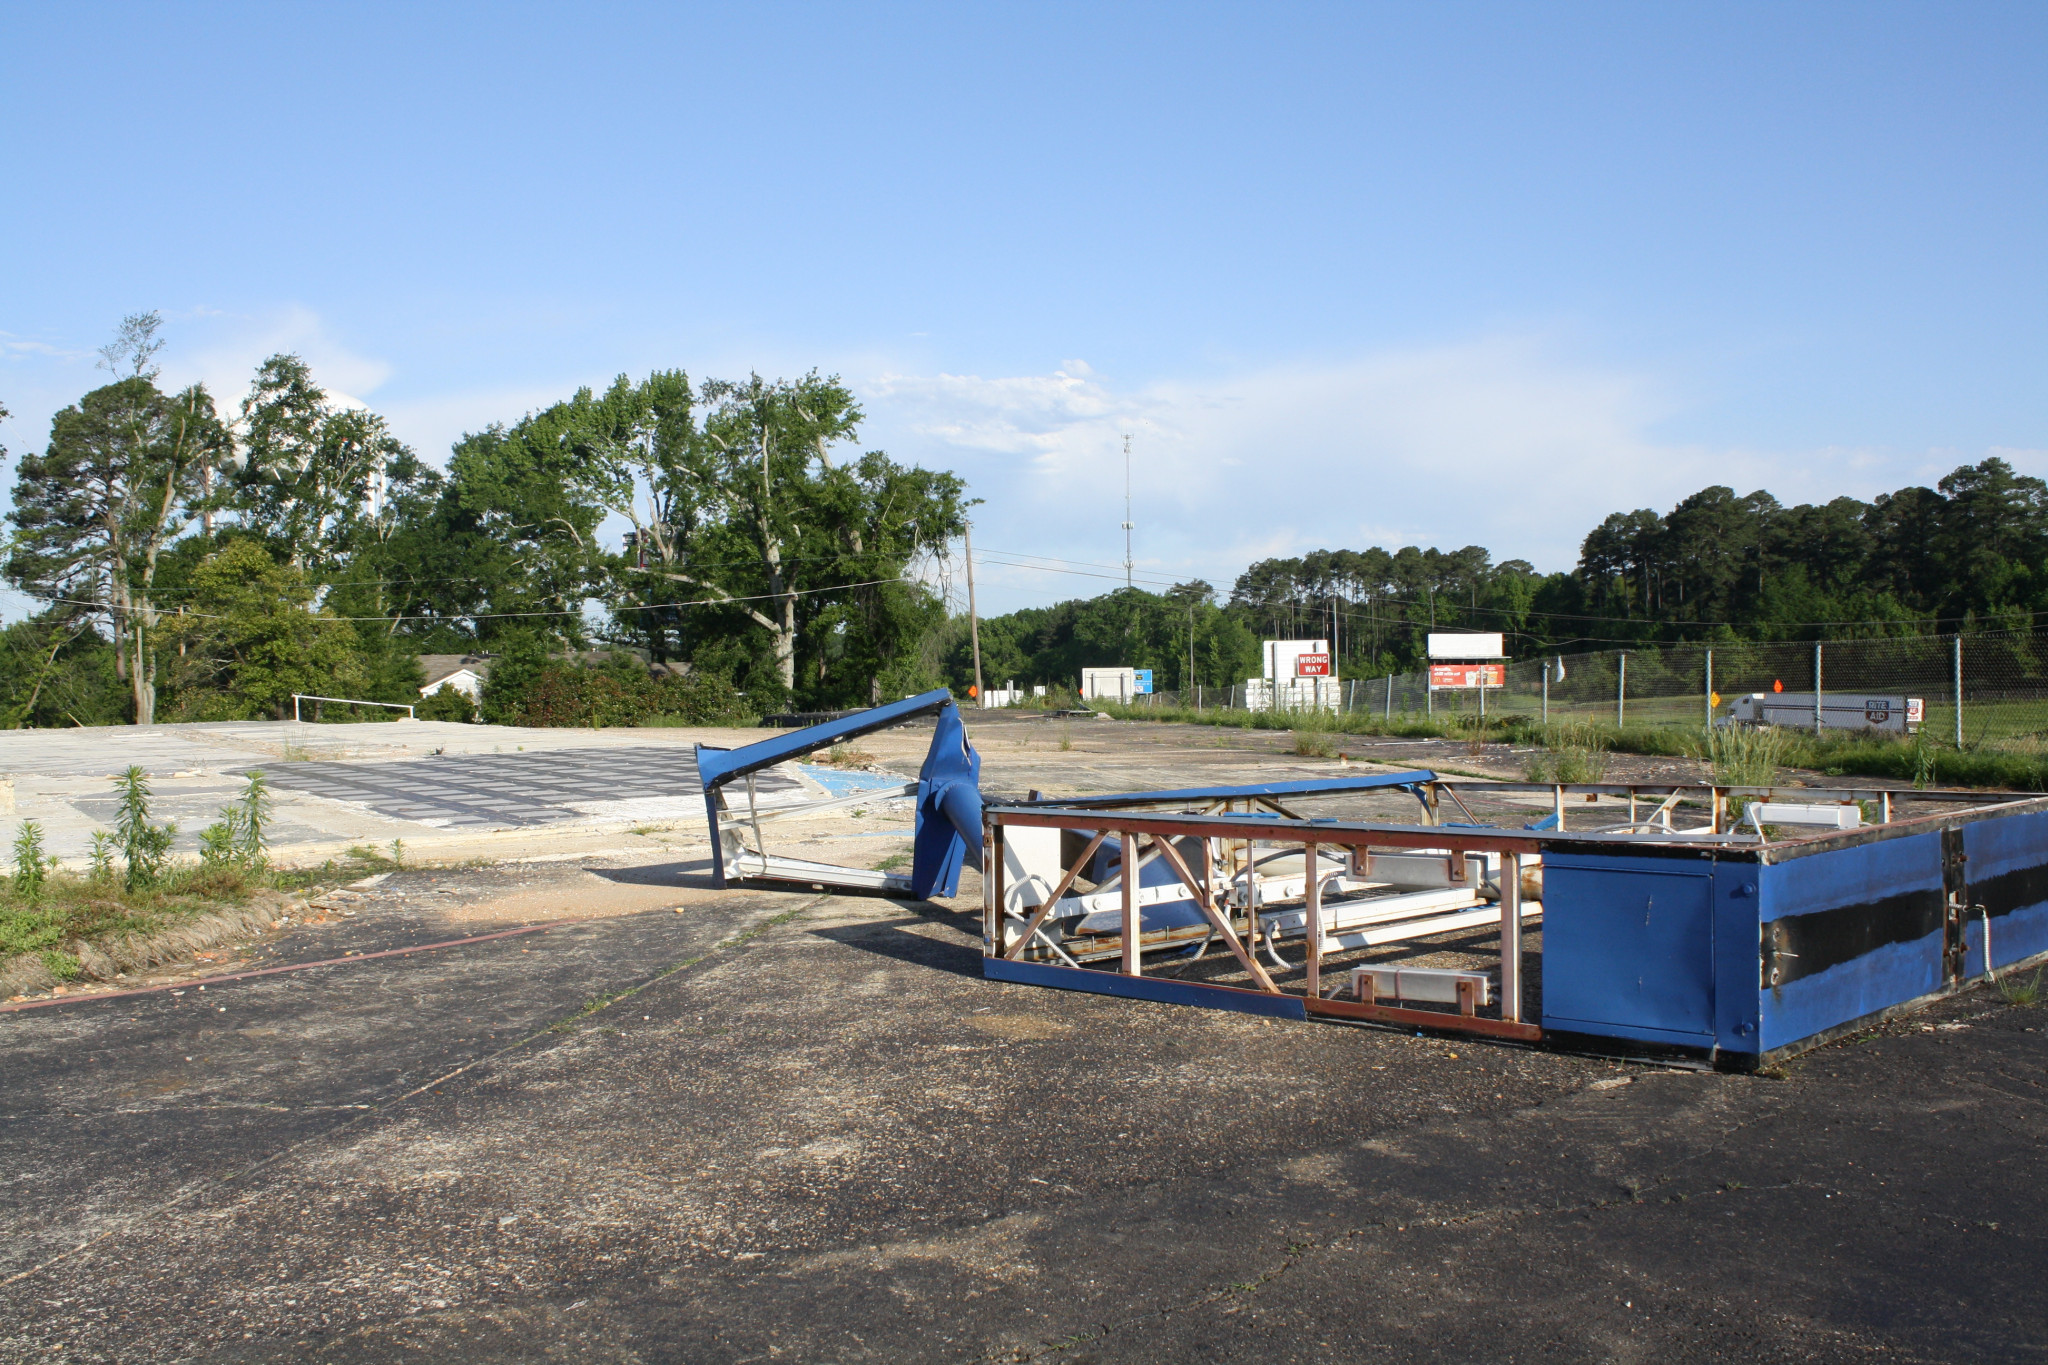 A current view of the remains of the motel: a slab and downed sign.